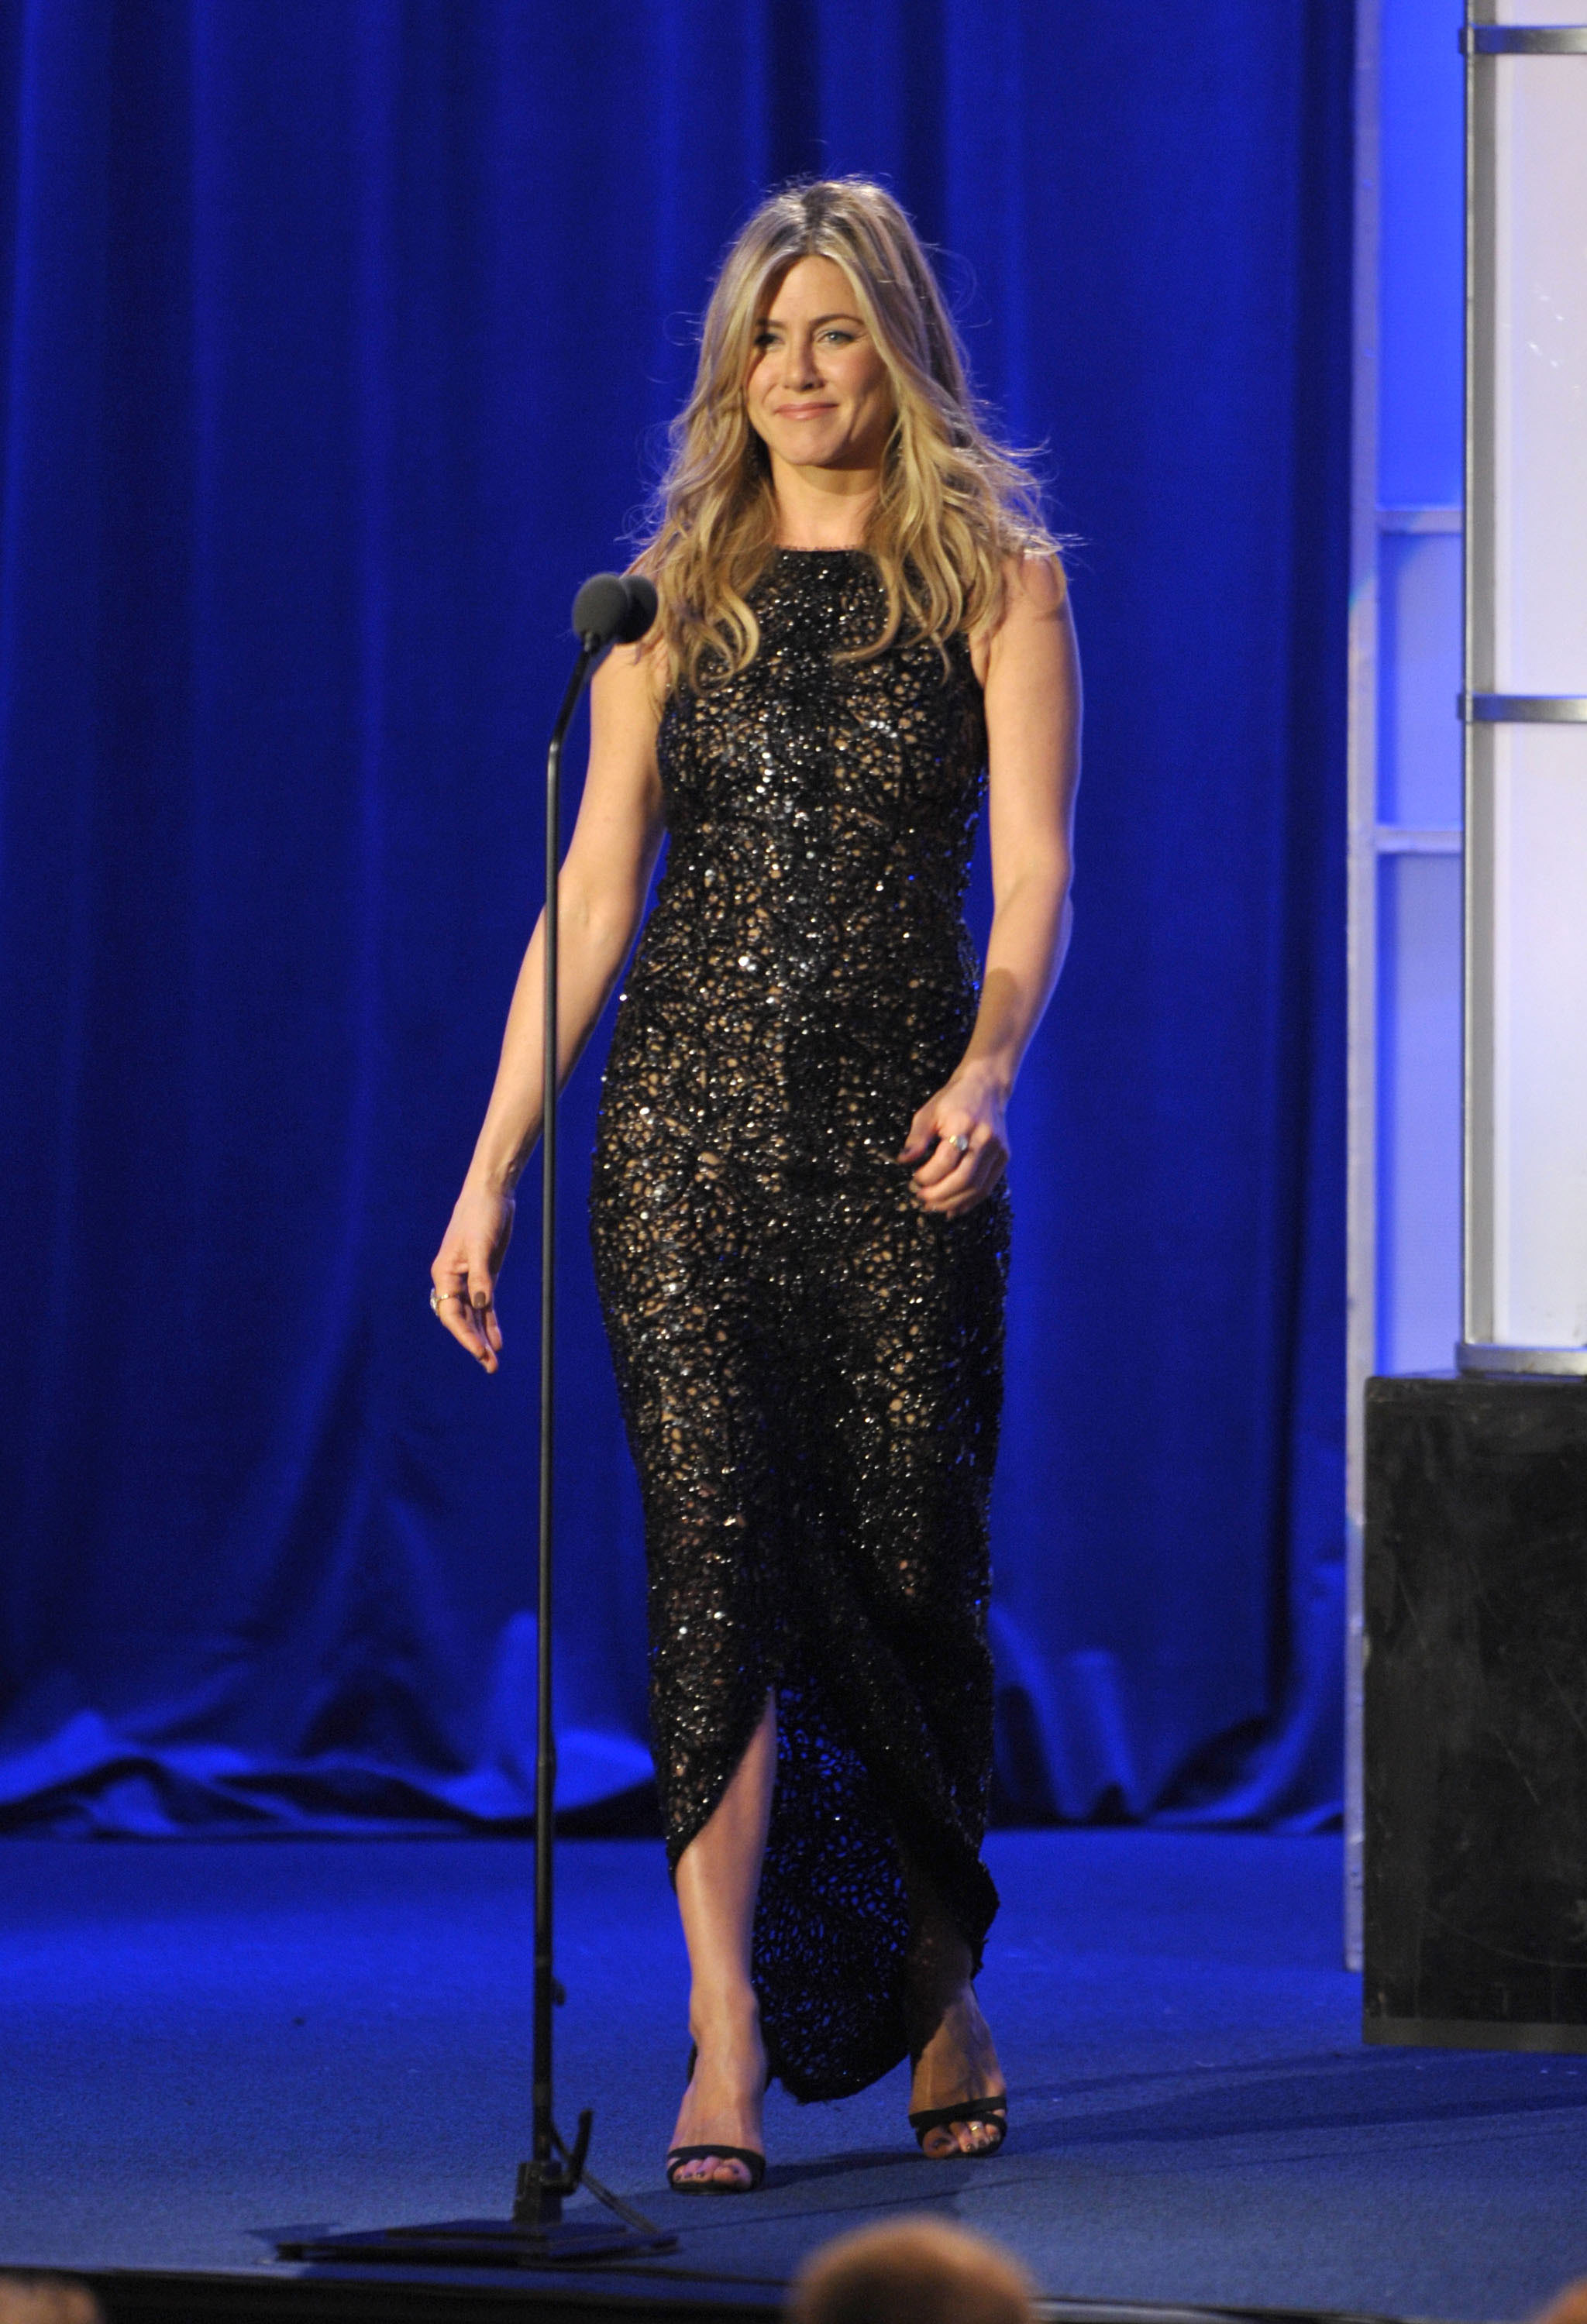 Jennifer's dress had a slit up the front.